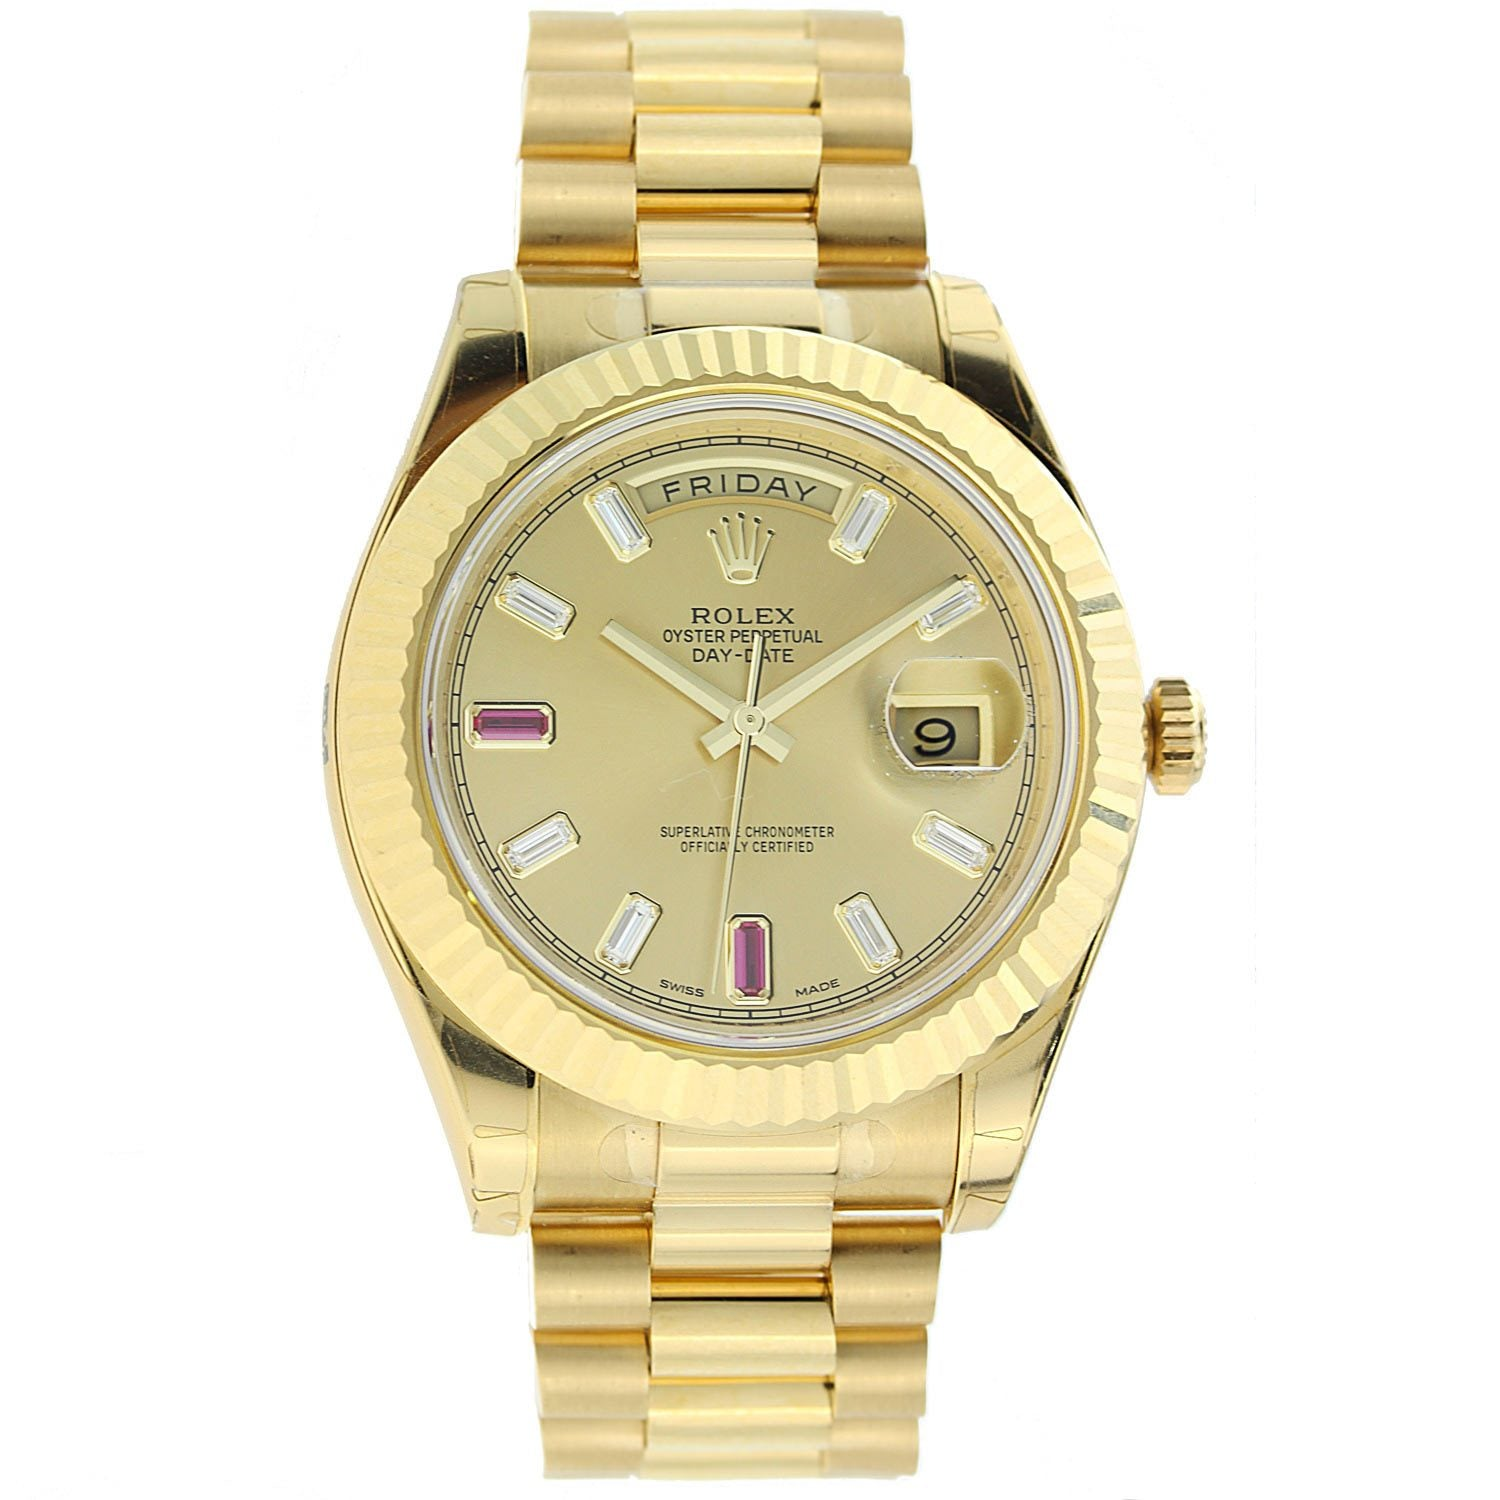 18K Yellow Gold Rolex Diamond Watch, Day Date II President 41mm, Champagne Diamond and Ruby Dial 218238